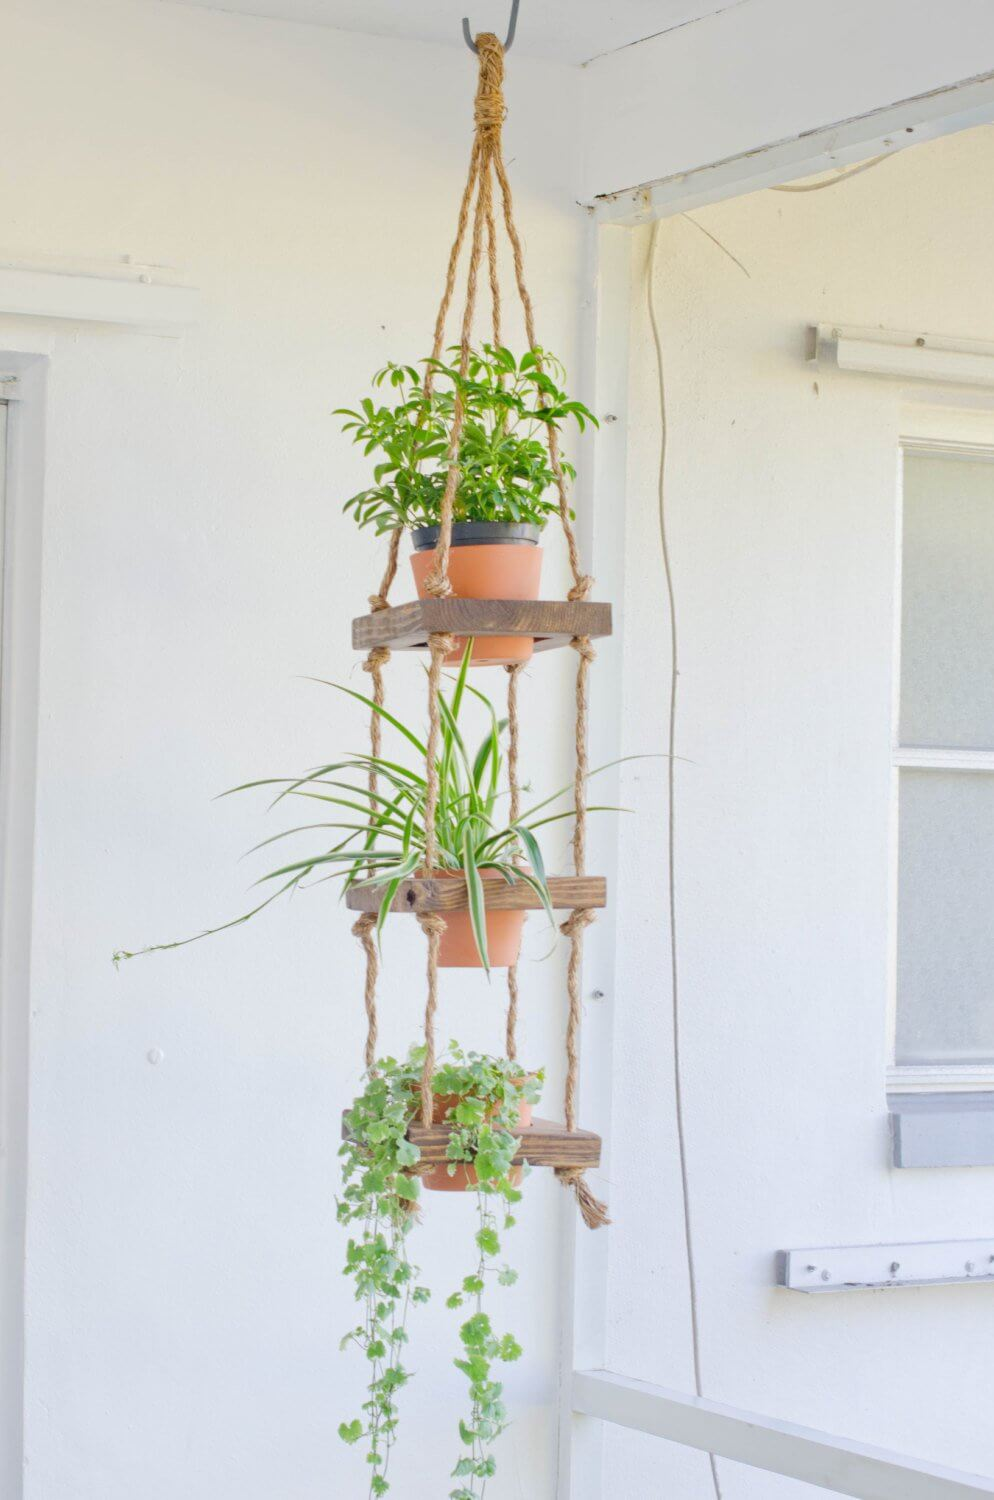 Macrame and Wood Tiered Pot Garden